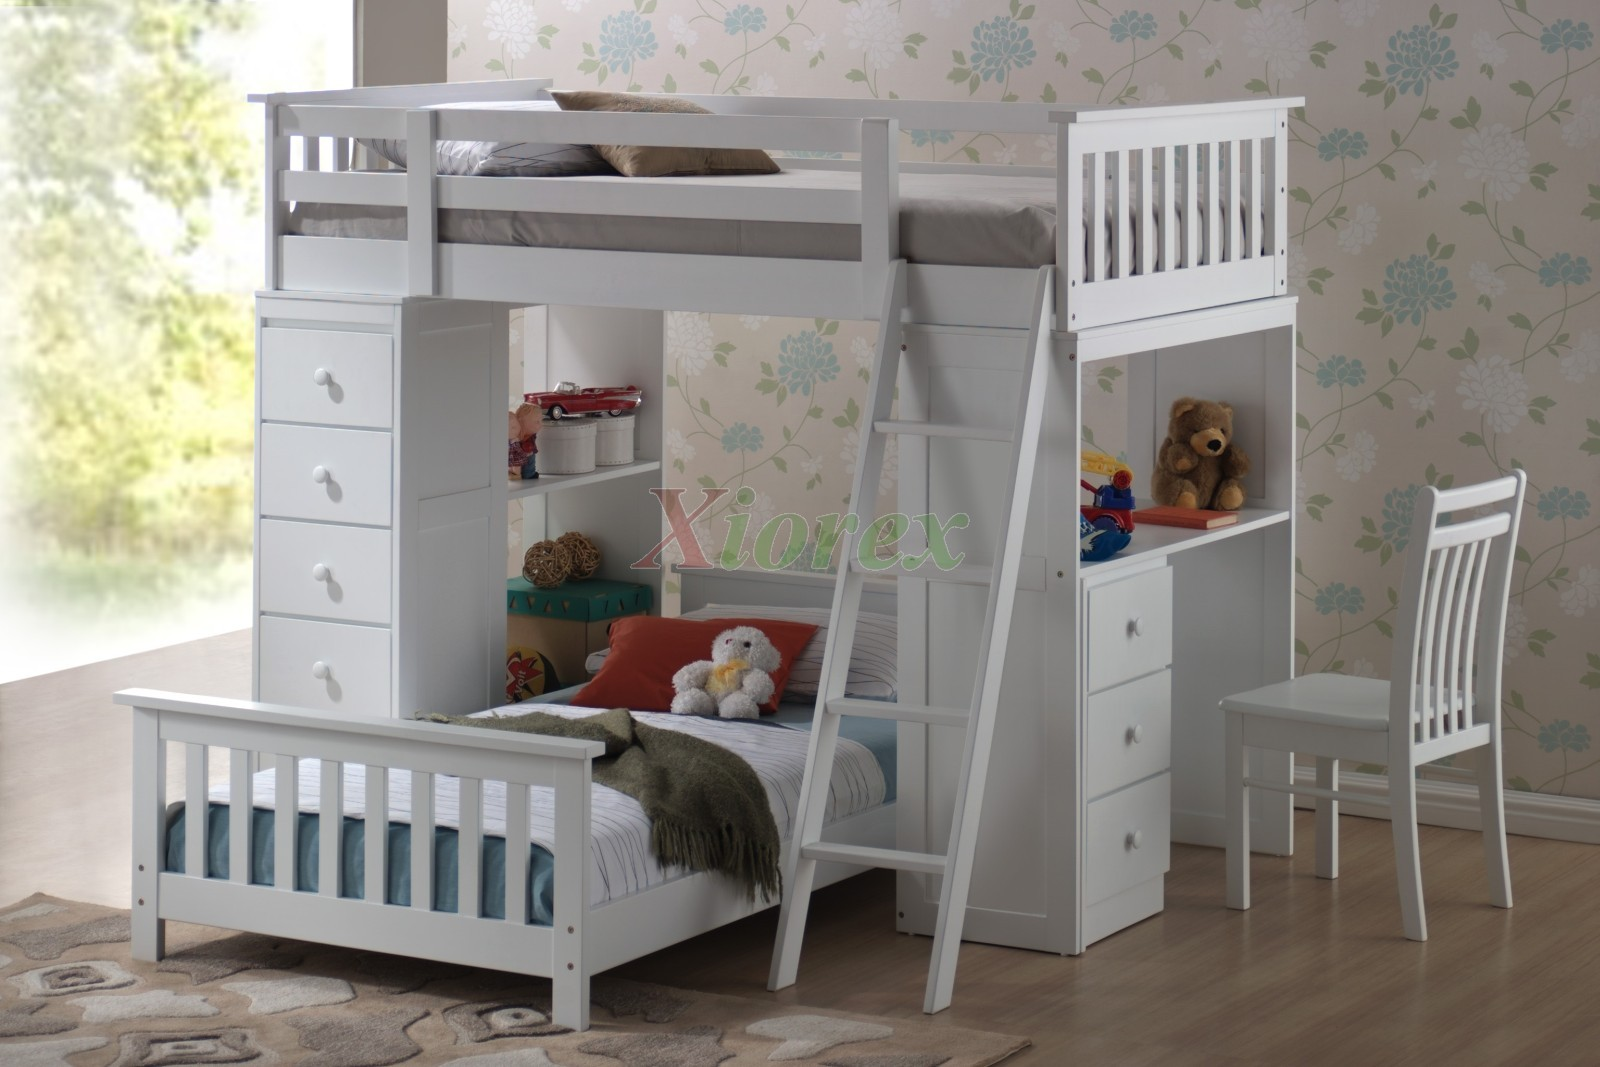 Huckleberry loft bunk beds for kids with storage desk Kids loft bed with desk